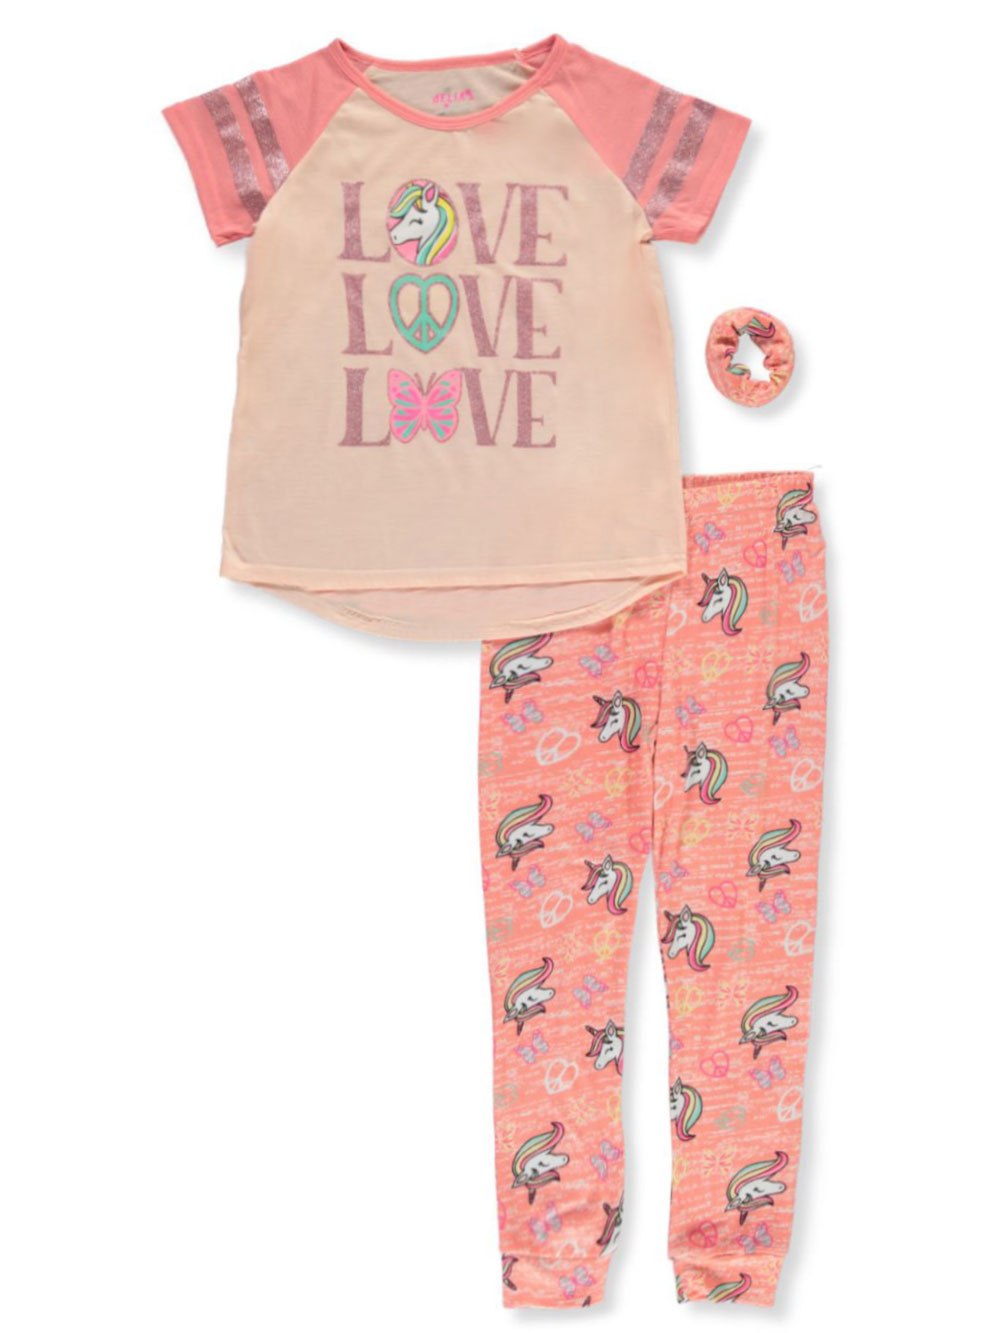 Size 5 Pajamas for Girls